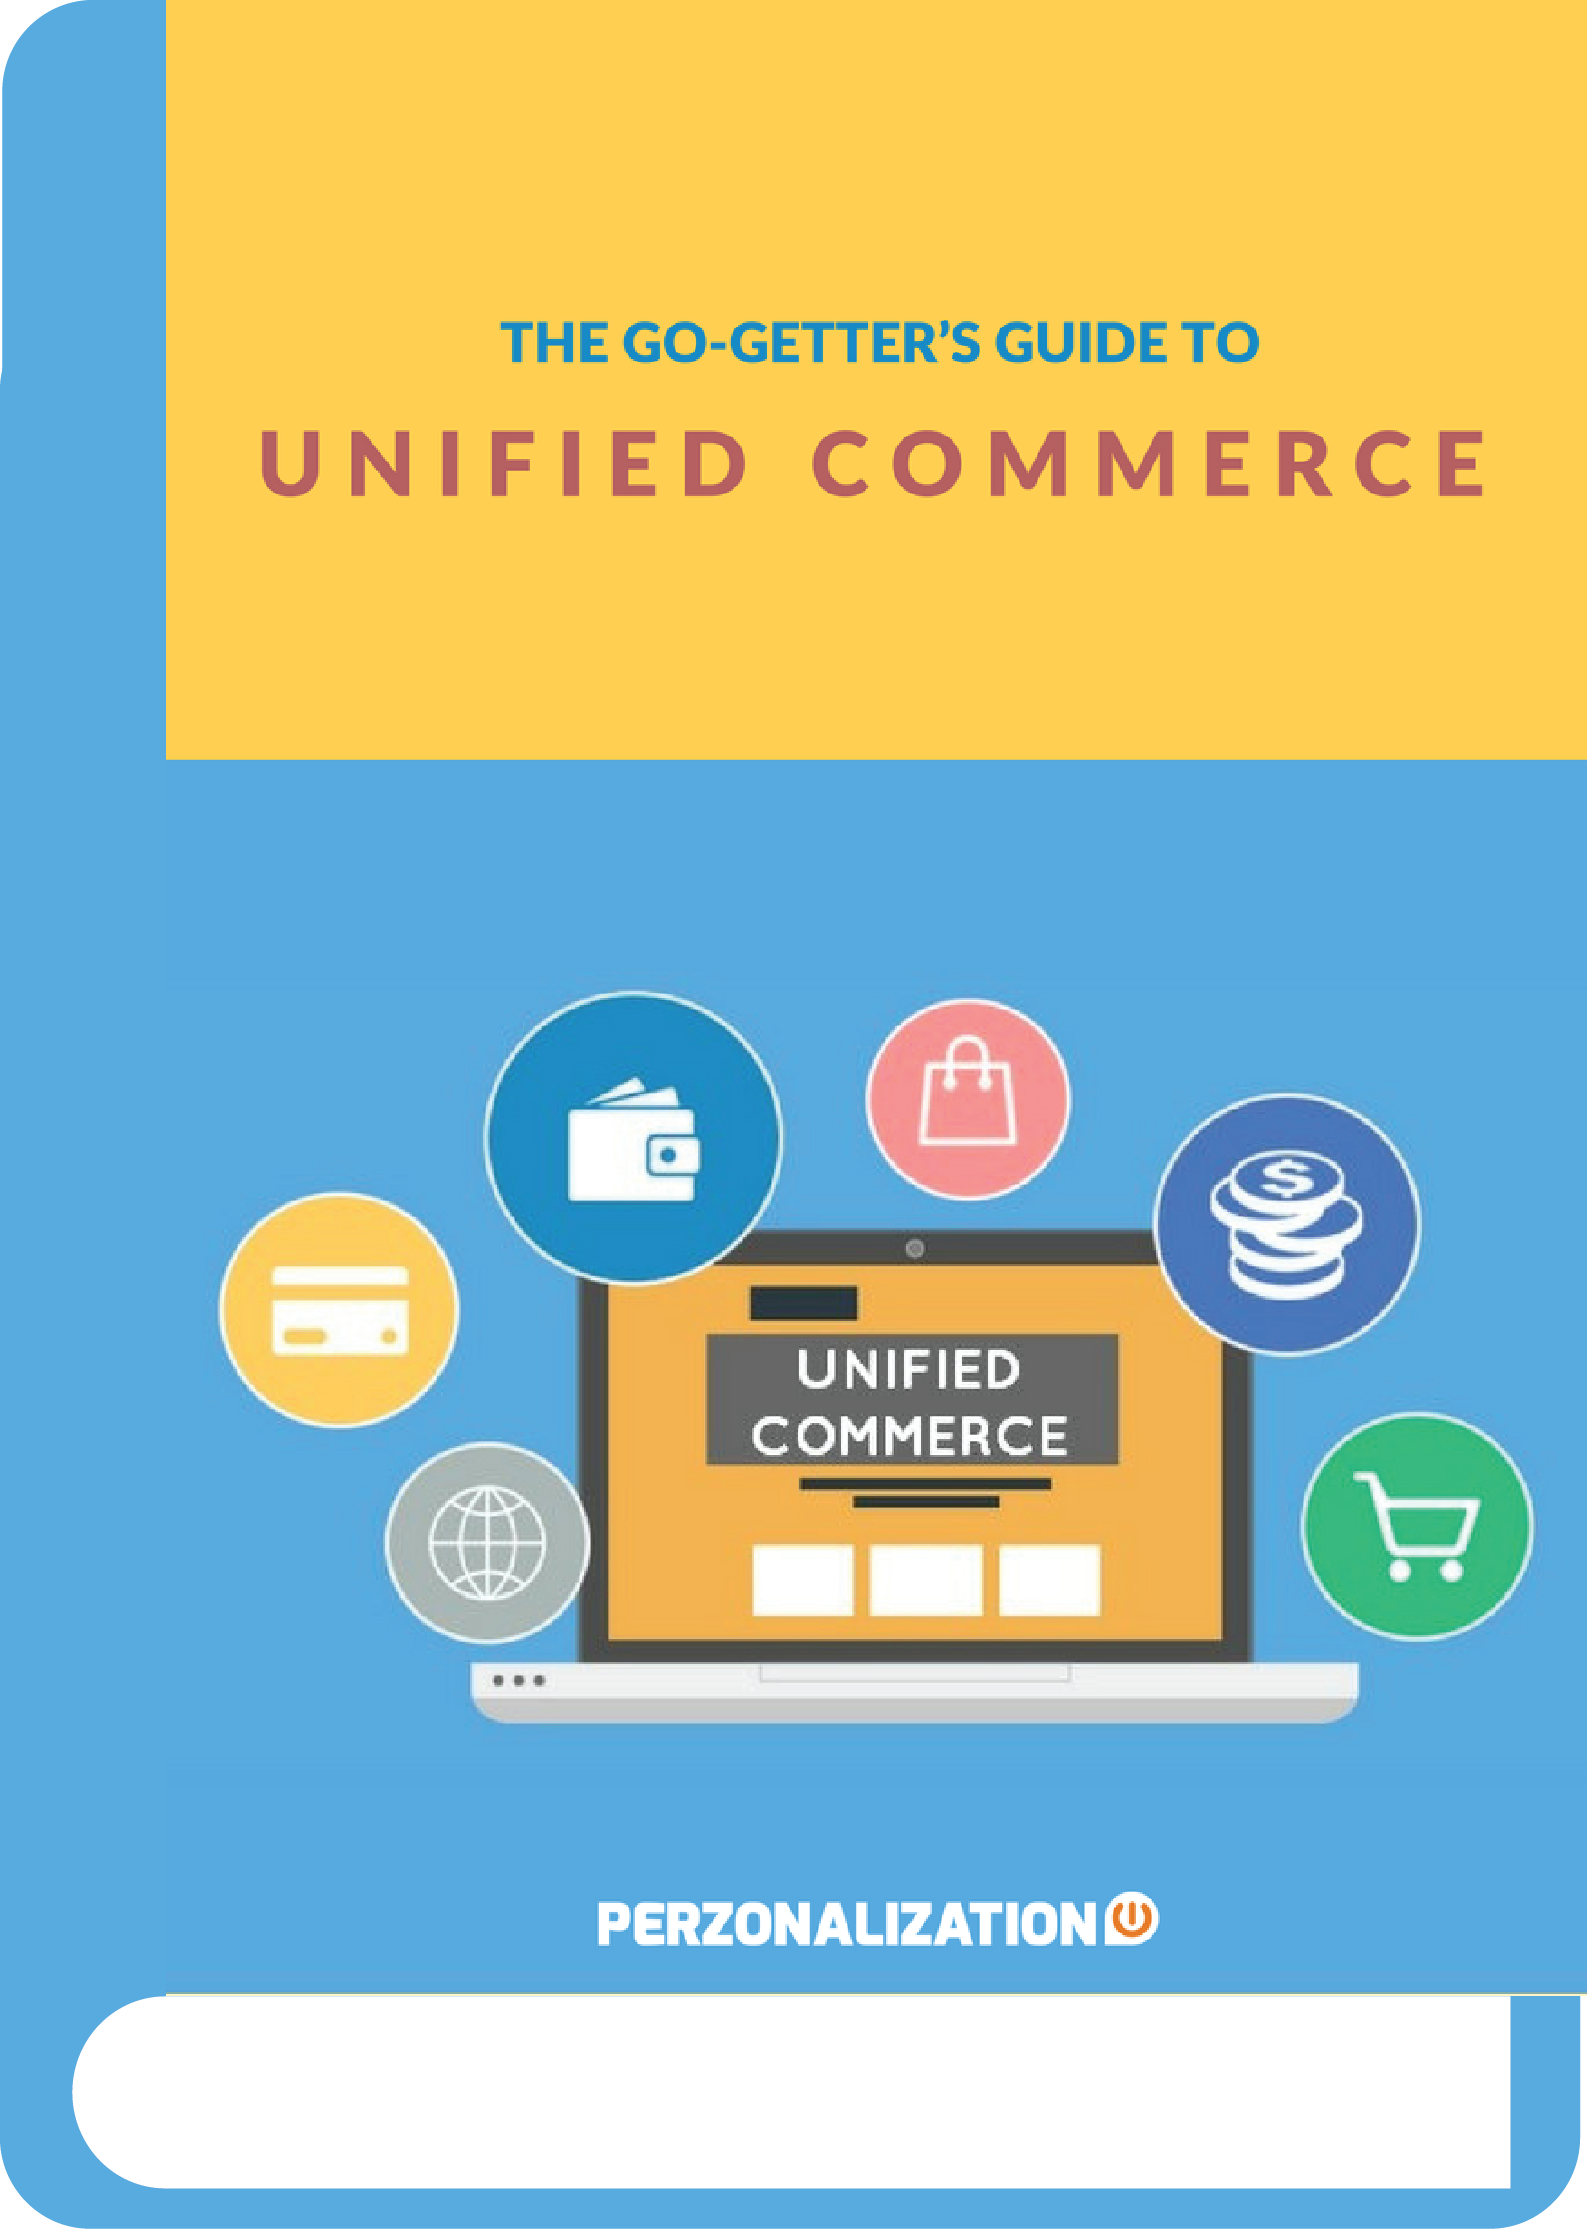 Establishing a Unified Commerce may sometimes sound challenging for a retailer, but there are solutions like the one we have here at Perzonalization.